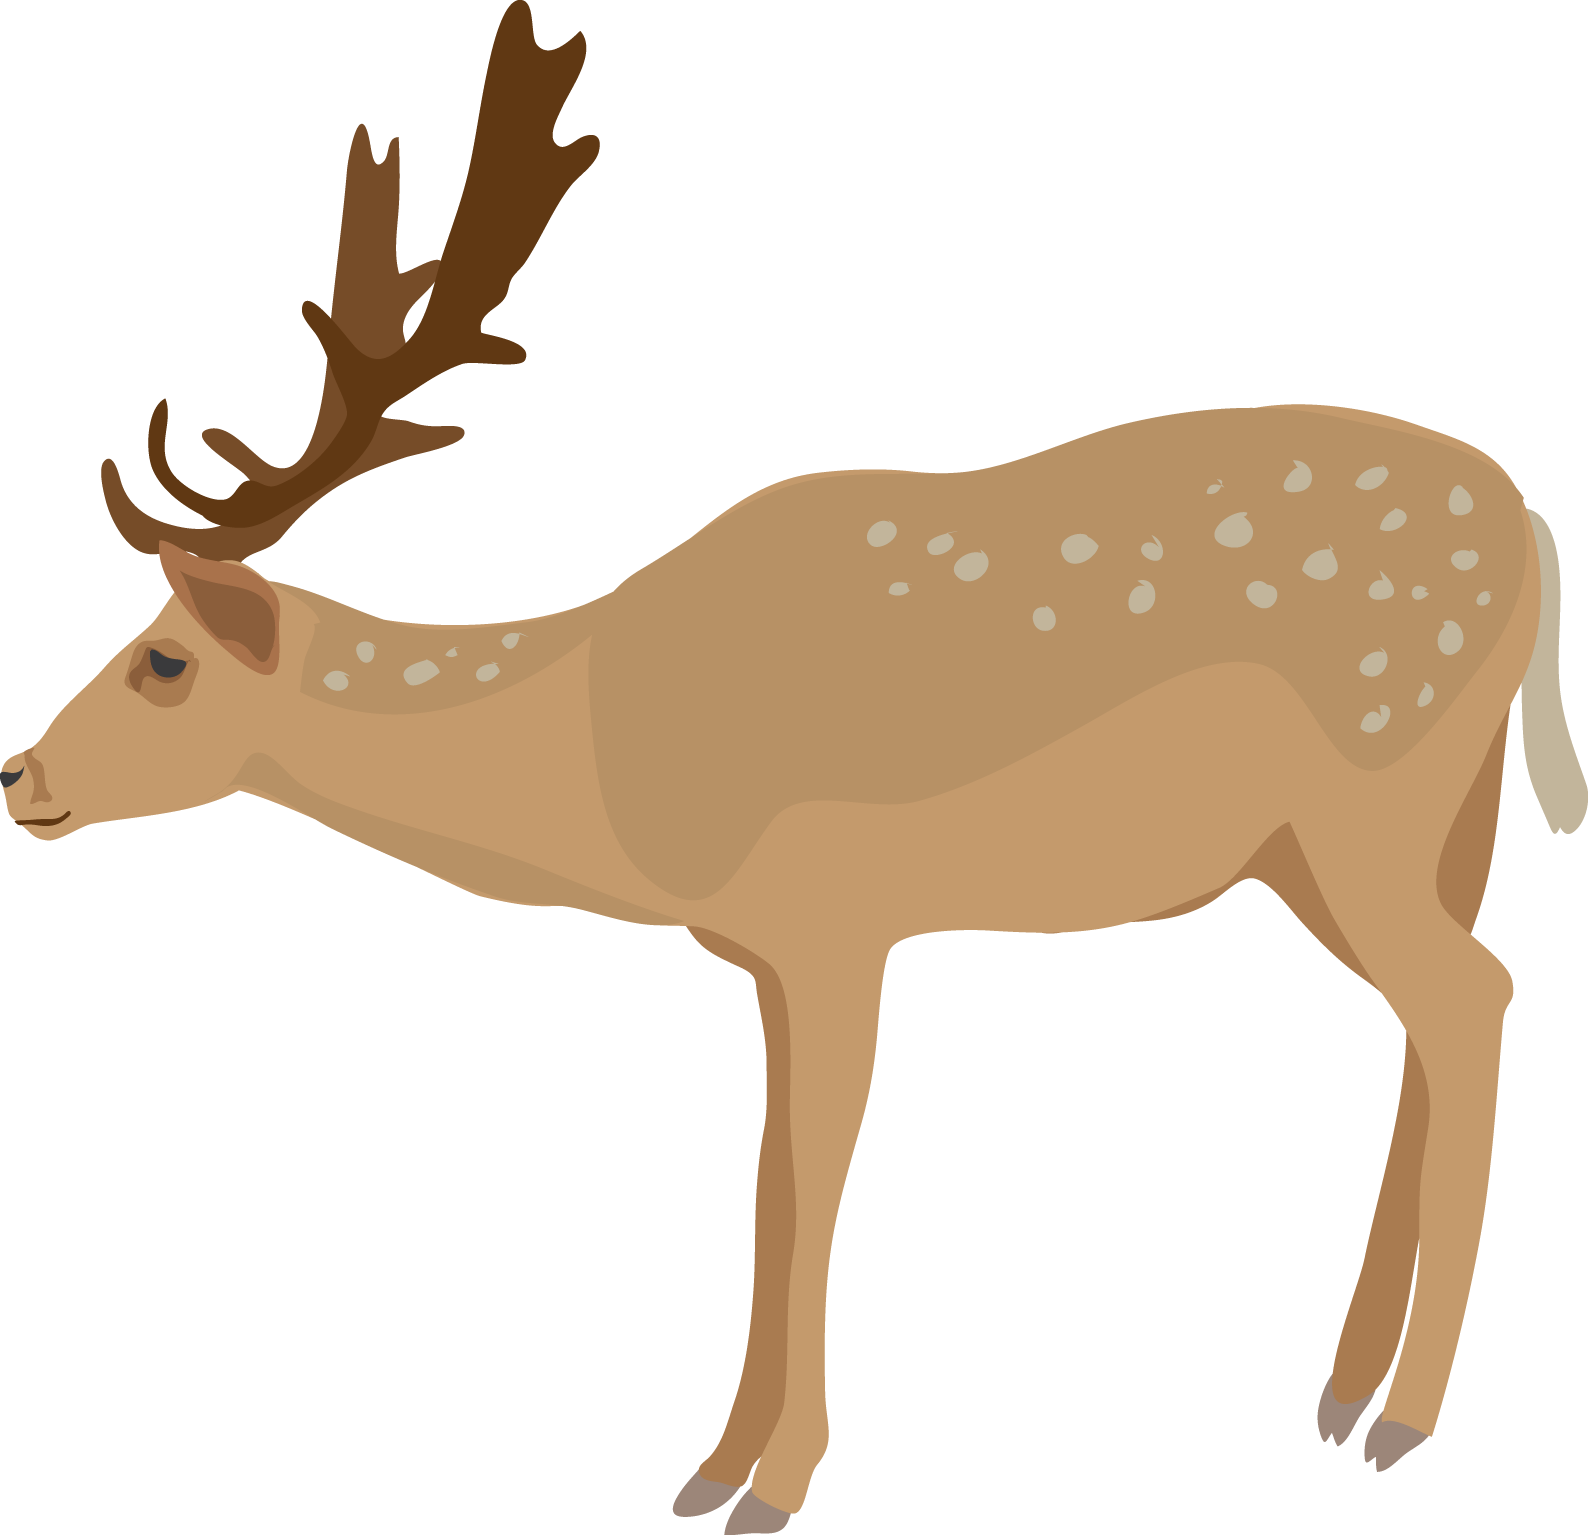 Deer clipart png. Collection of transparent